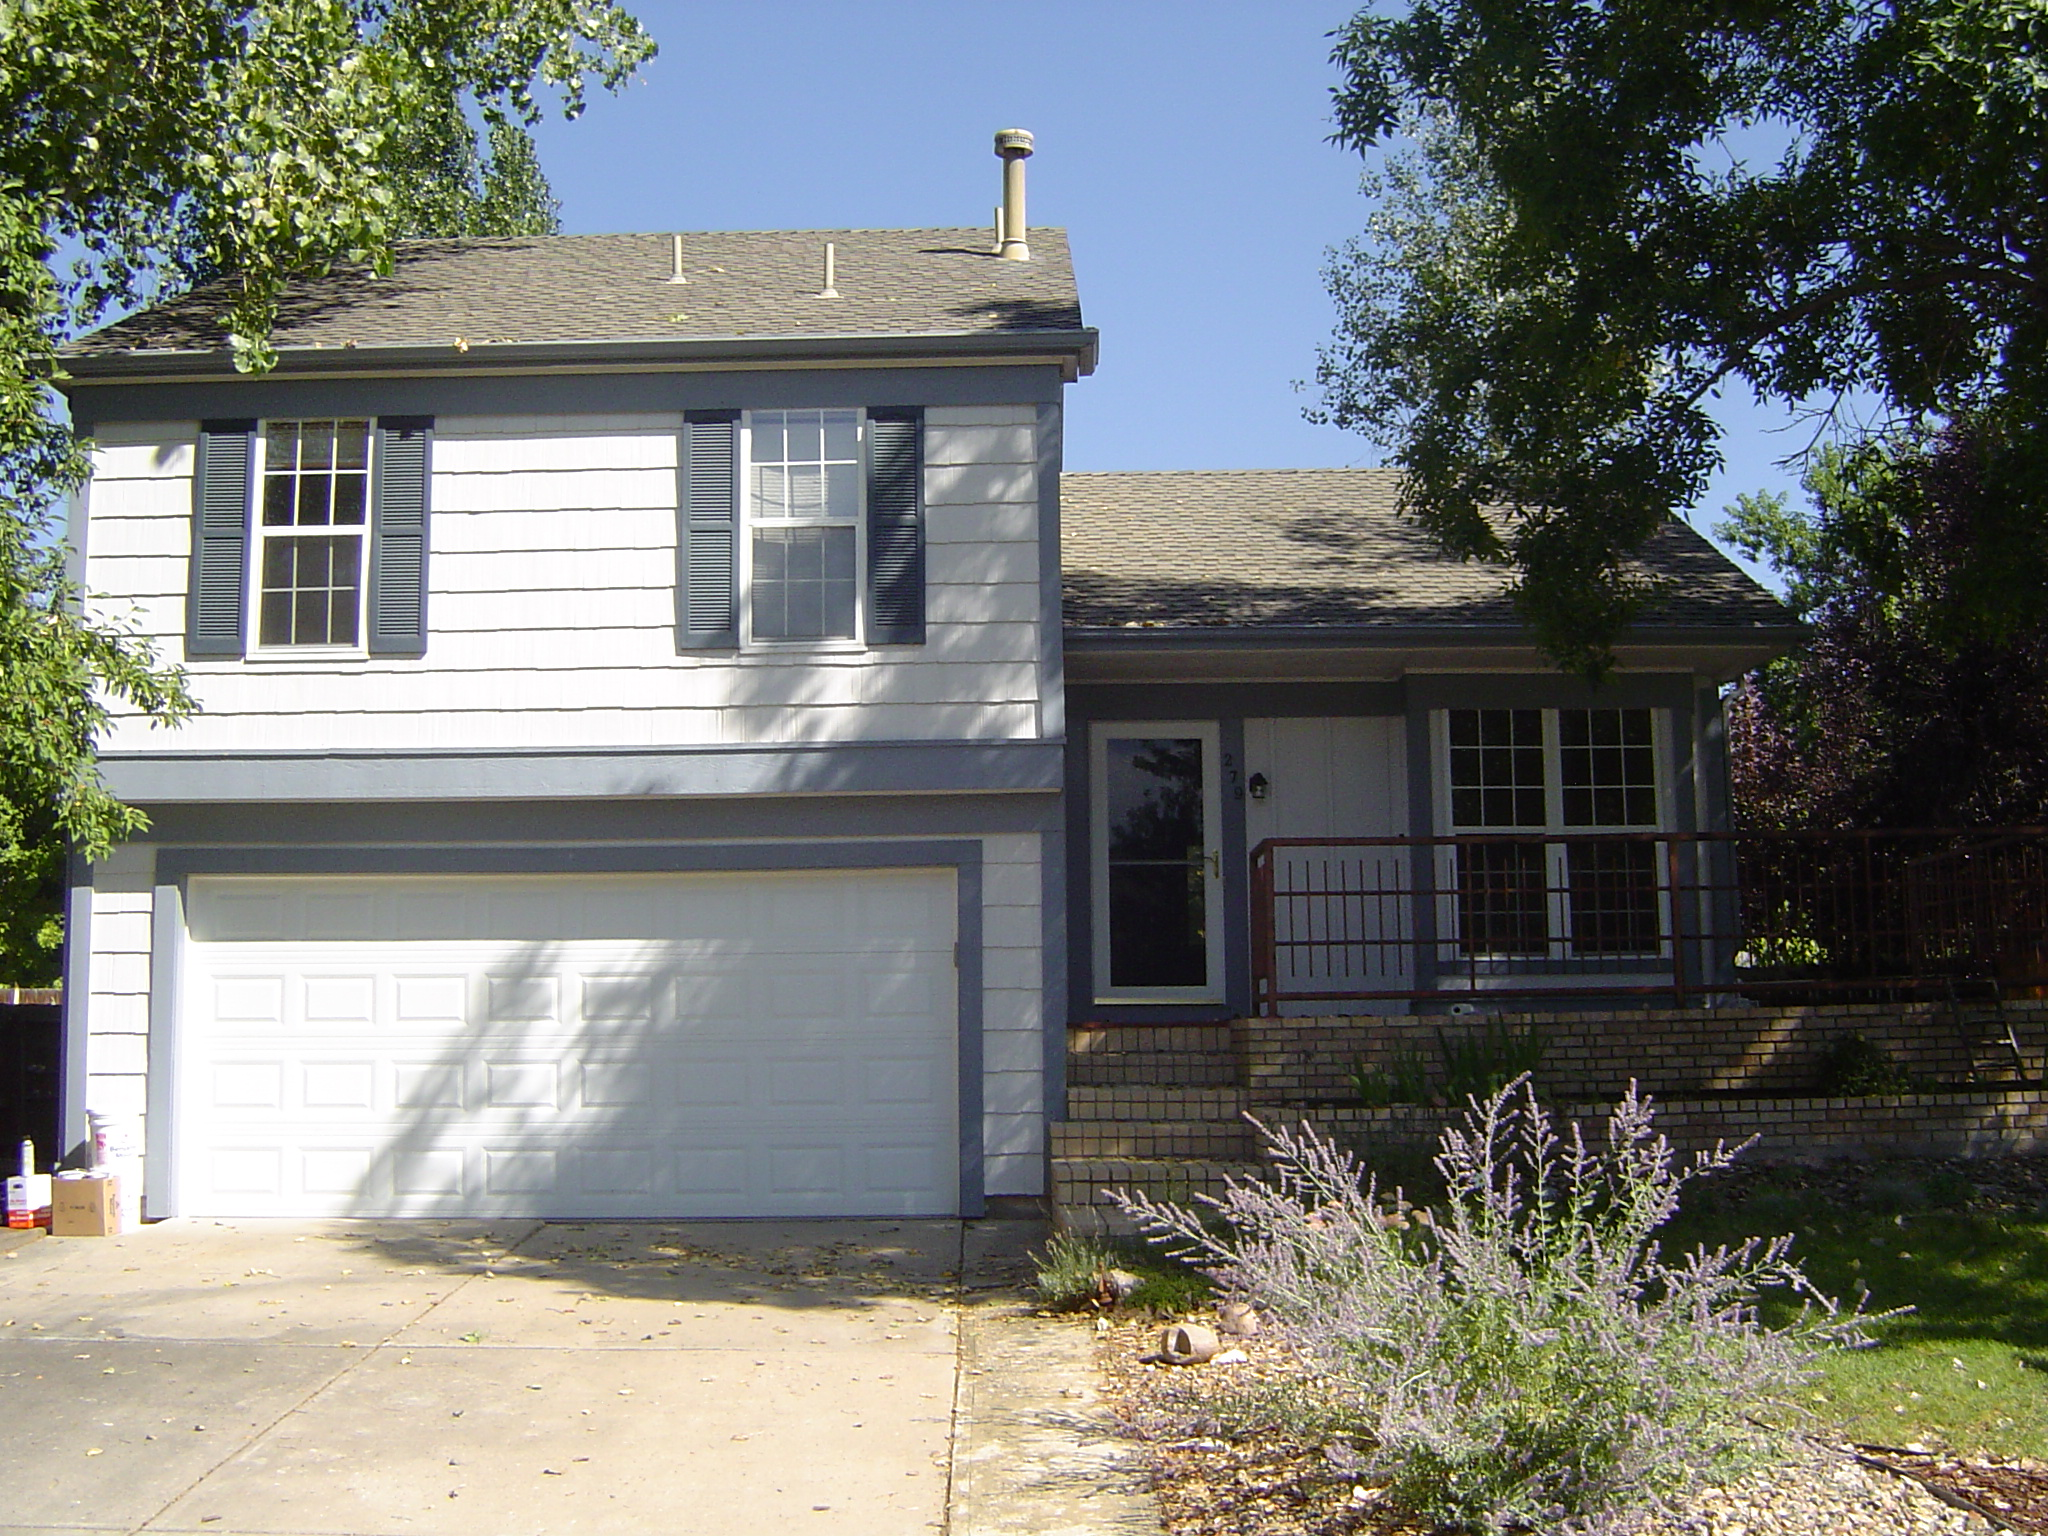 Great Exterior Painting Project Of This Prep For Sale Home Maurerpainting